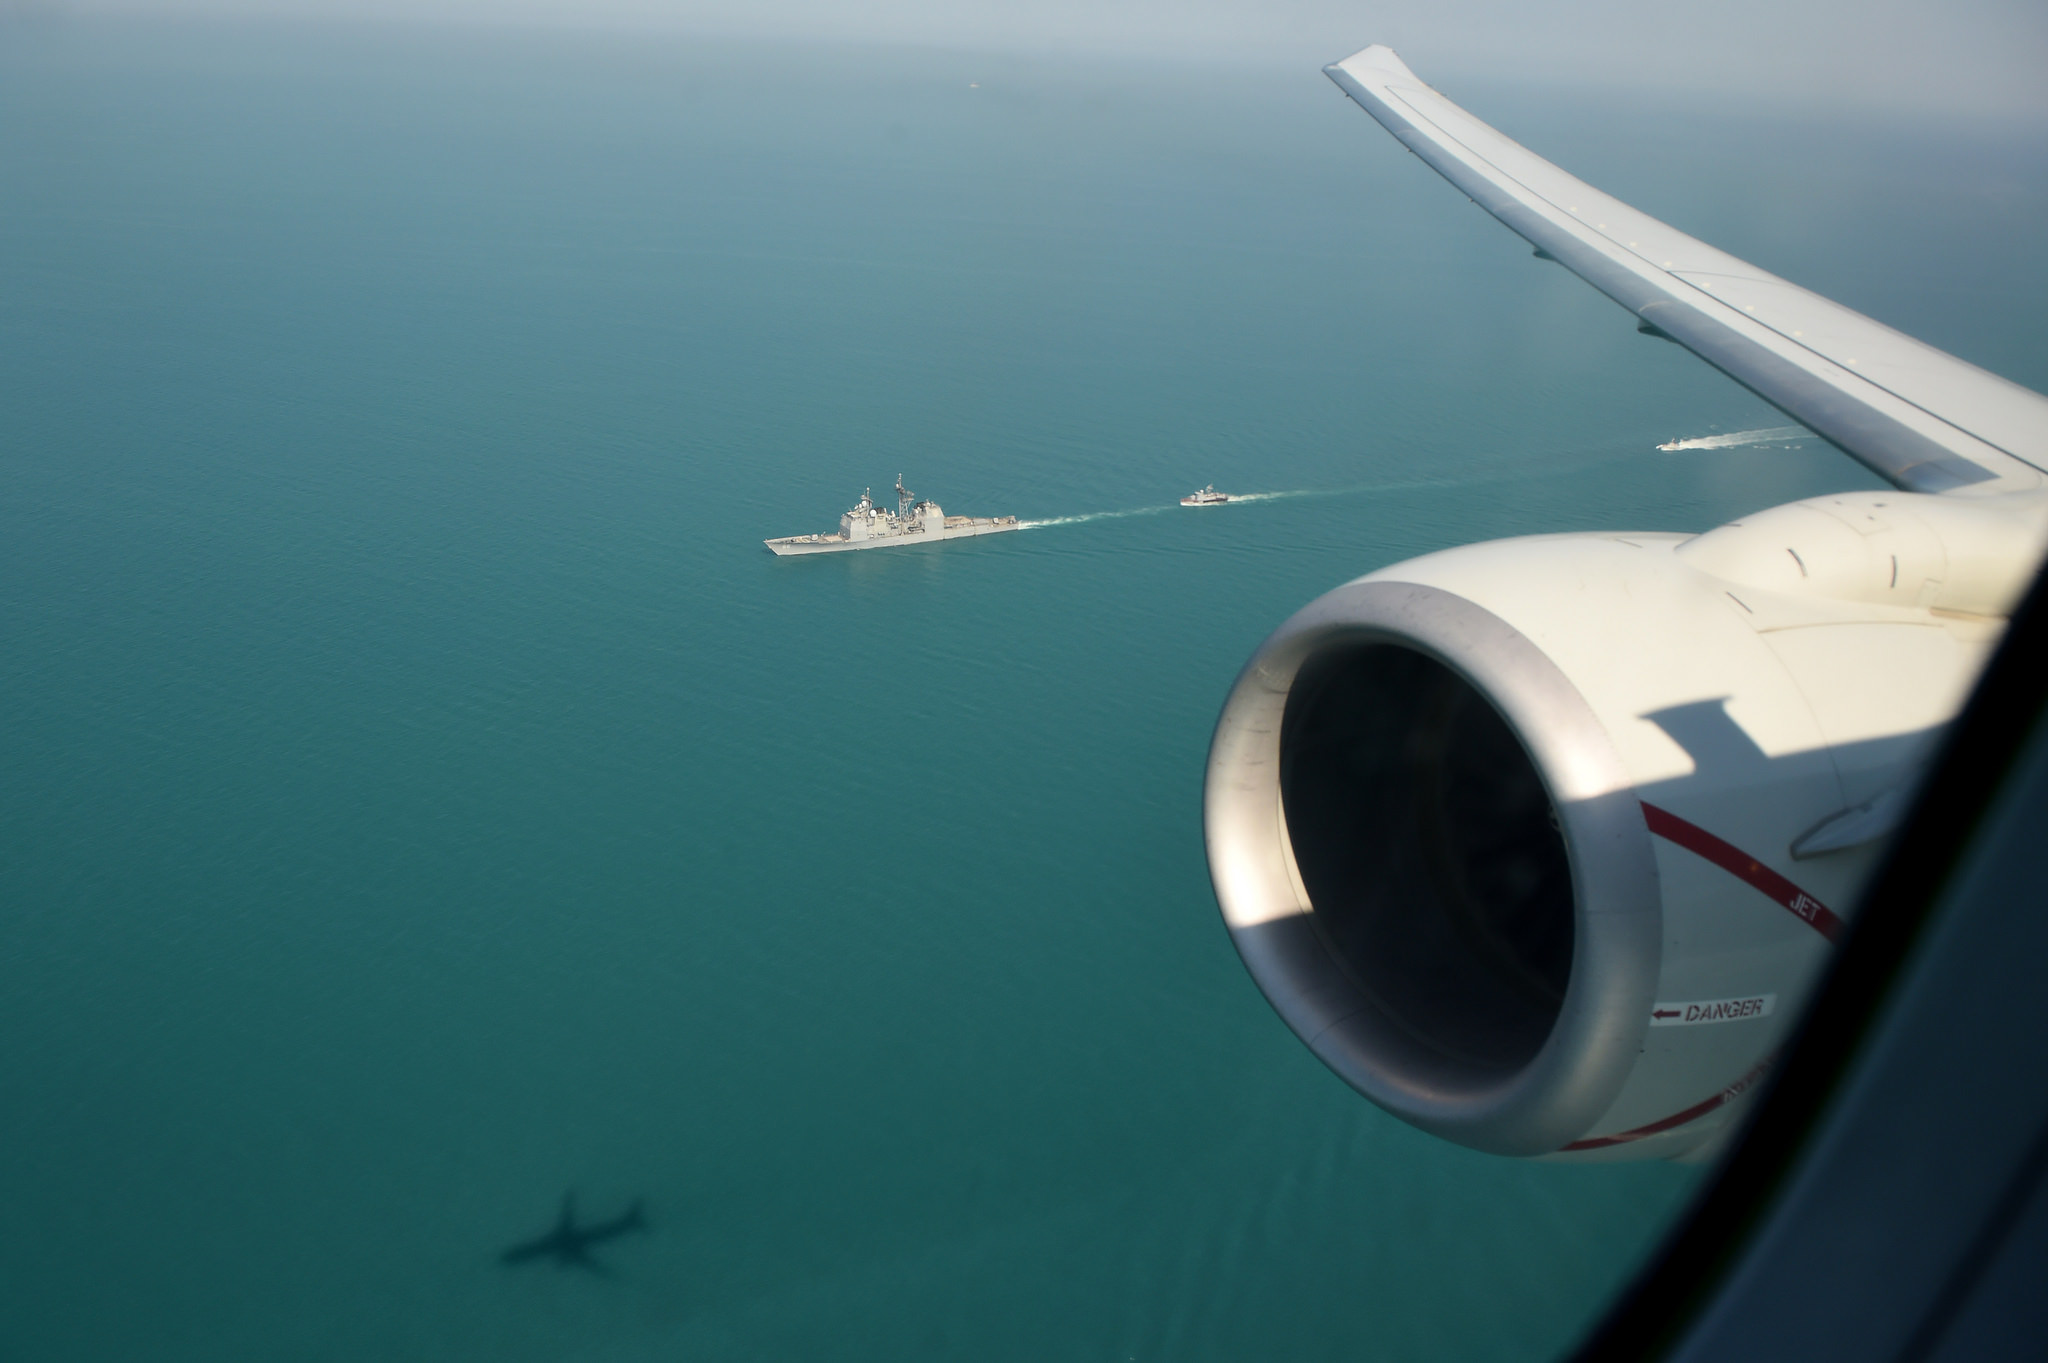 A P-8A Poseidon, assigned to Patrol Squadron (VP) 16, participates in a photoex flight during exercise Sea Breeze 2017 in Odessa, Ukraine, July 21. Sea Breeze is a U.S. and Ukraine co-hosted multinational maritime exercise held in the Black Sea and is designed to enhance interoperability of participating nations and strengthen maritime security within the region.